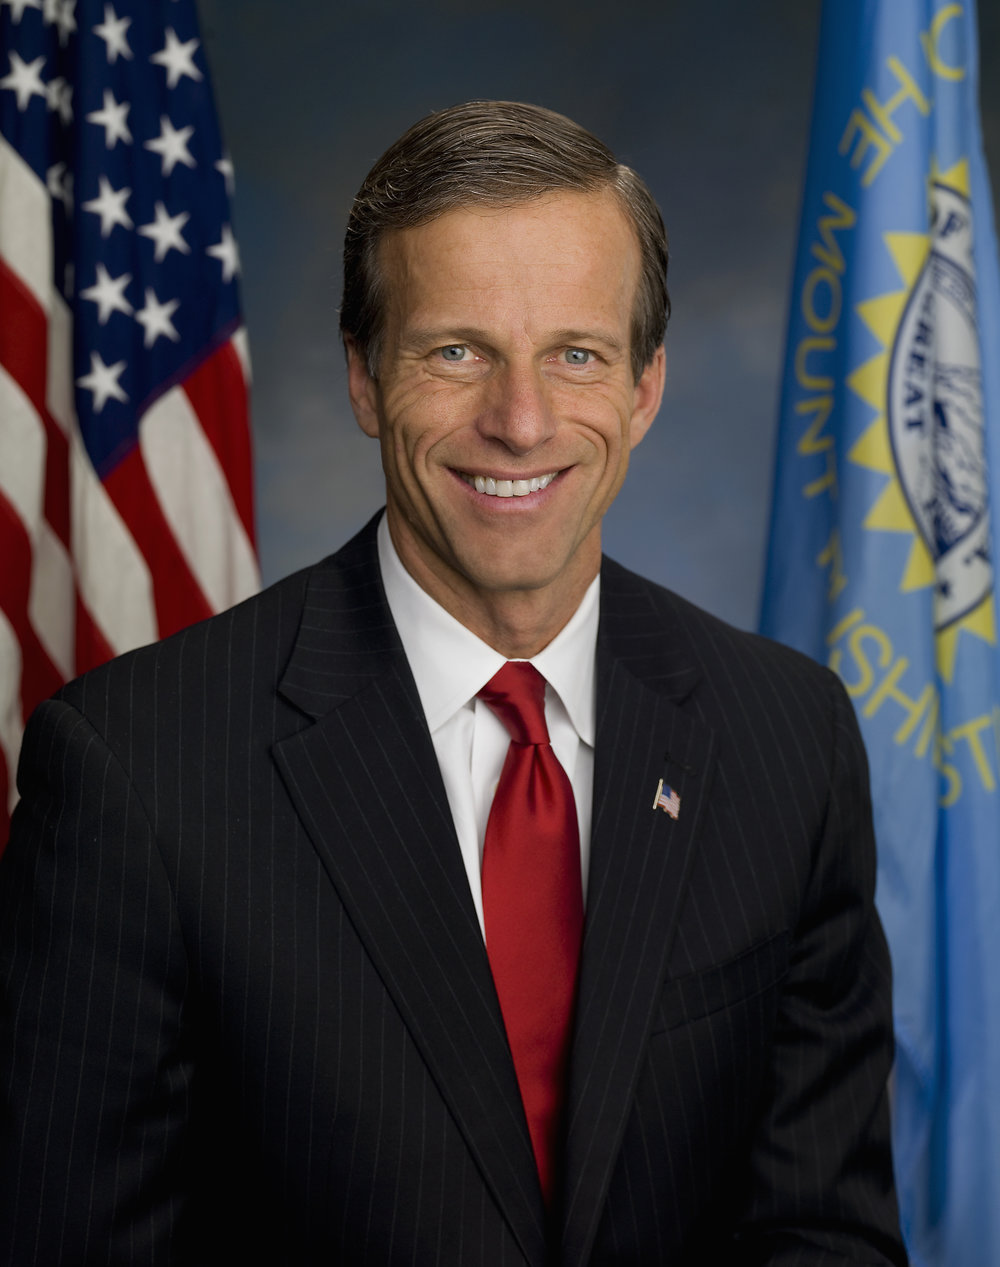 Official United States Senate photograph of Sen. John Thune (R-South Dakota). Photograph by John Klemmer. Thune, the third-ranking Republican, doesn't buy the notion that South Dakotans would be adversely affected by the Senate health care bill.